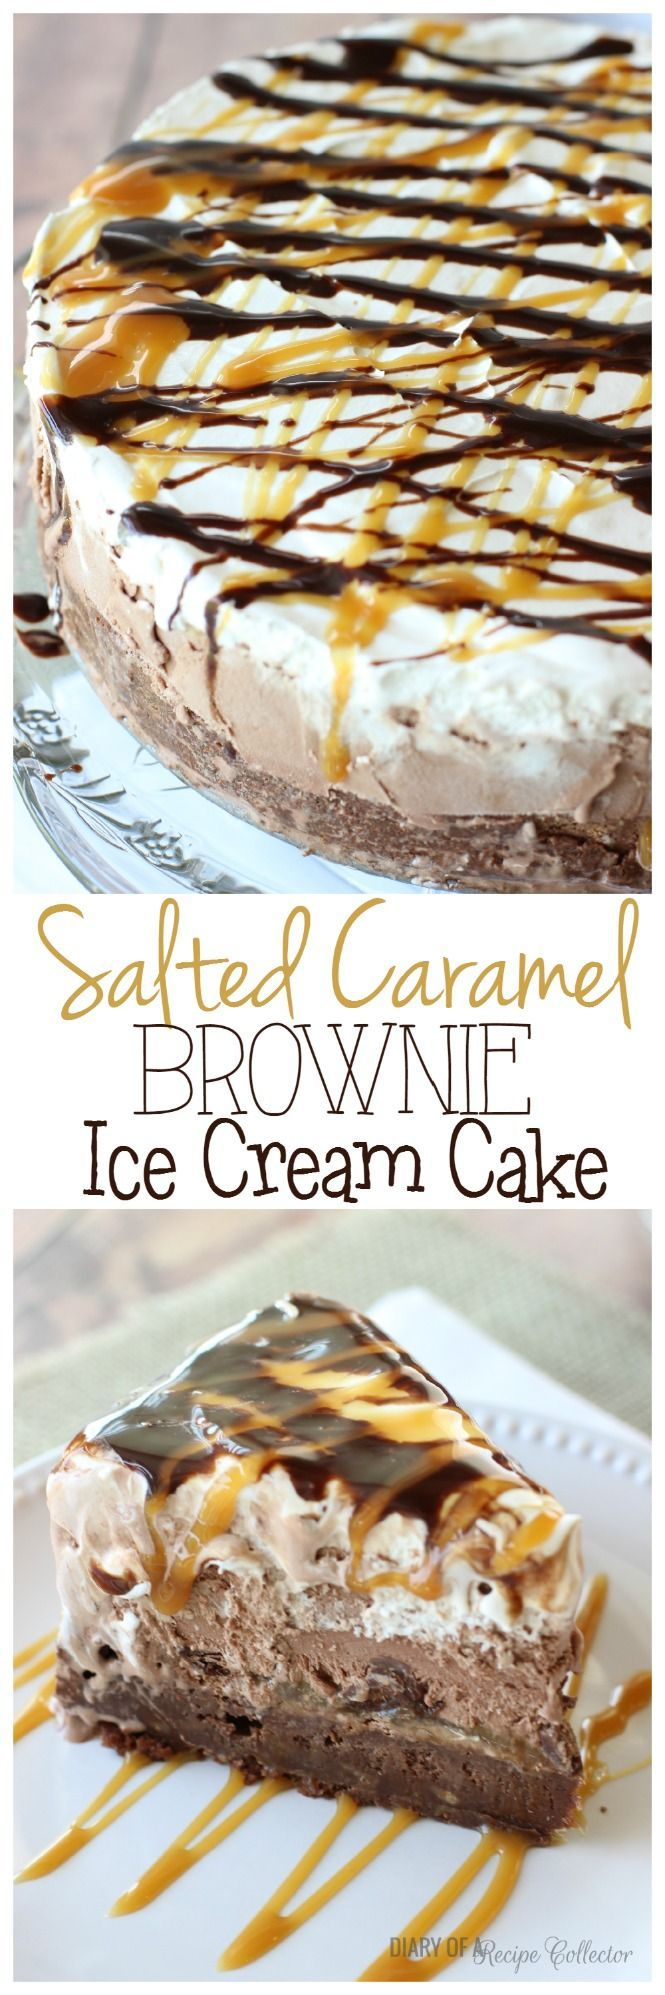 Salted Caramel Brownie Ice Cream Cake – Layers of rich brownie filled with toffee, salted caramel, dark chocolate truffles,